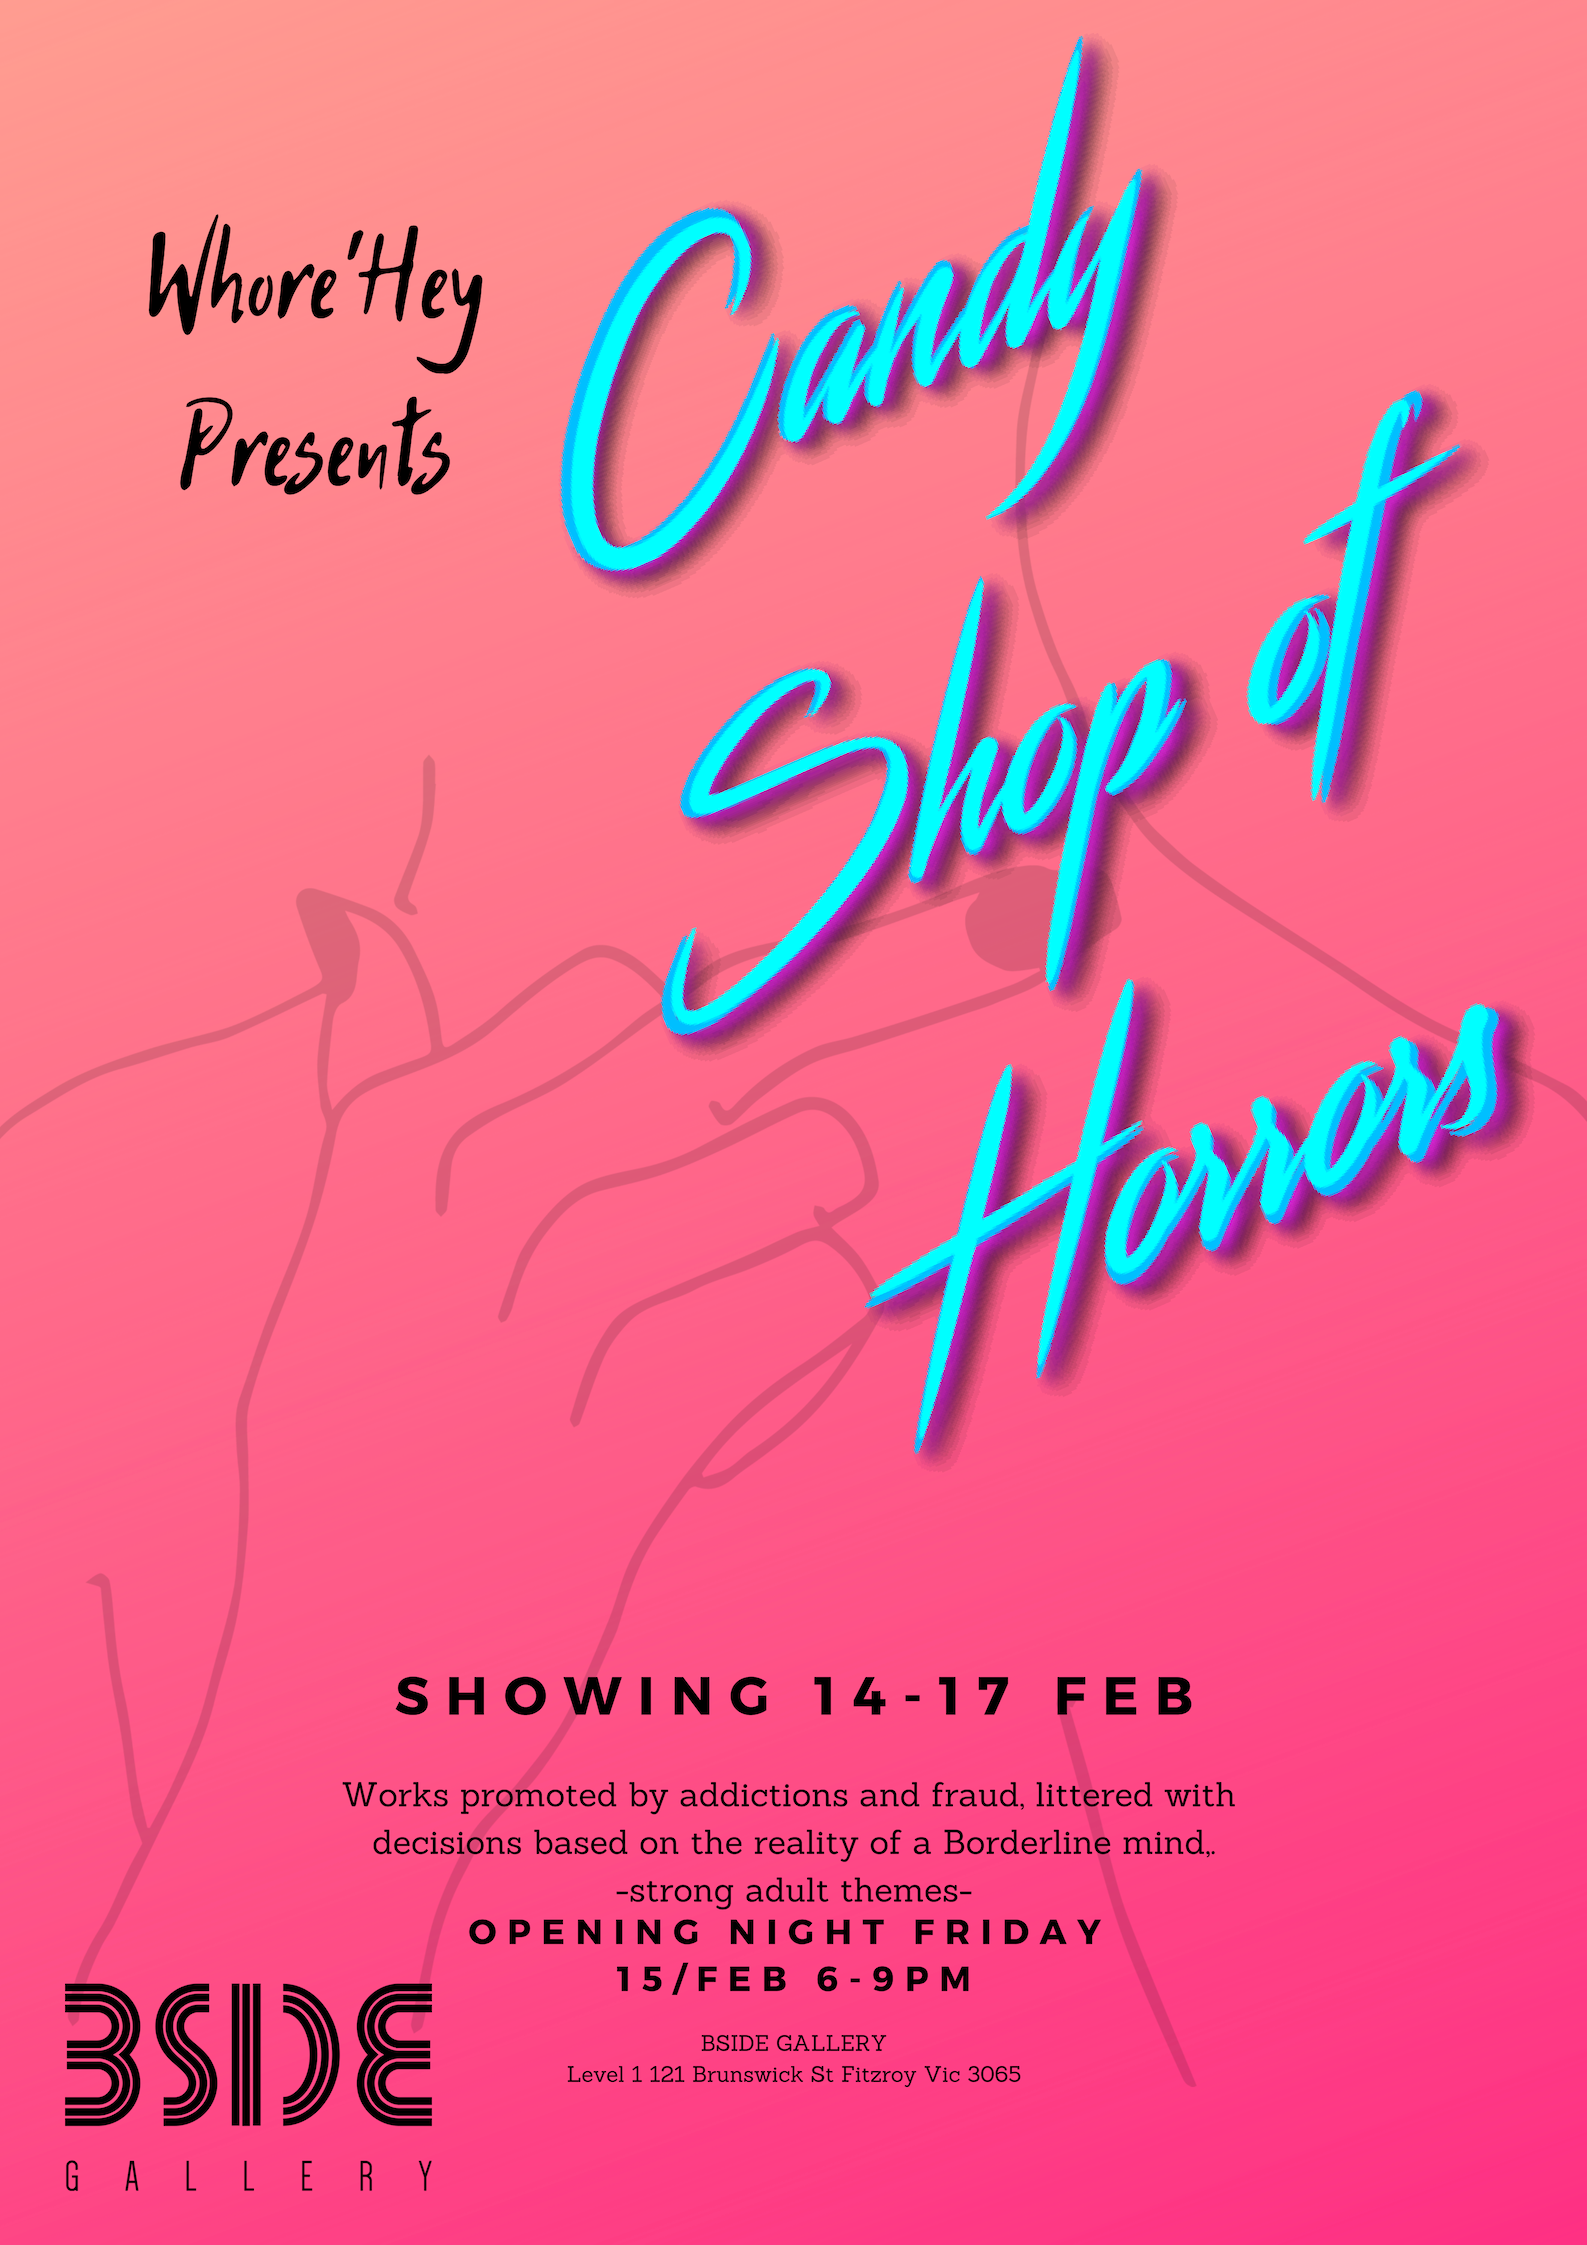 WHORE'HEY PRESENTS:CANDY SHOP OF HORRORS -